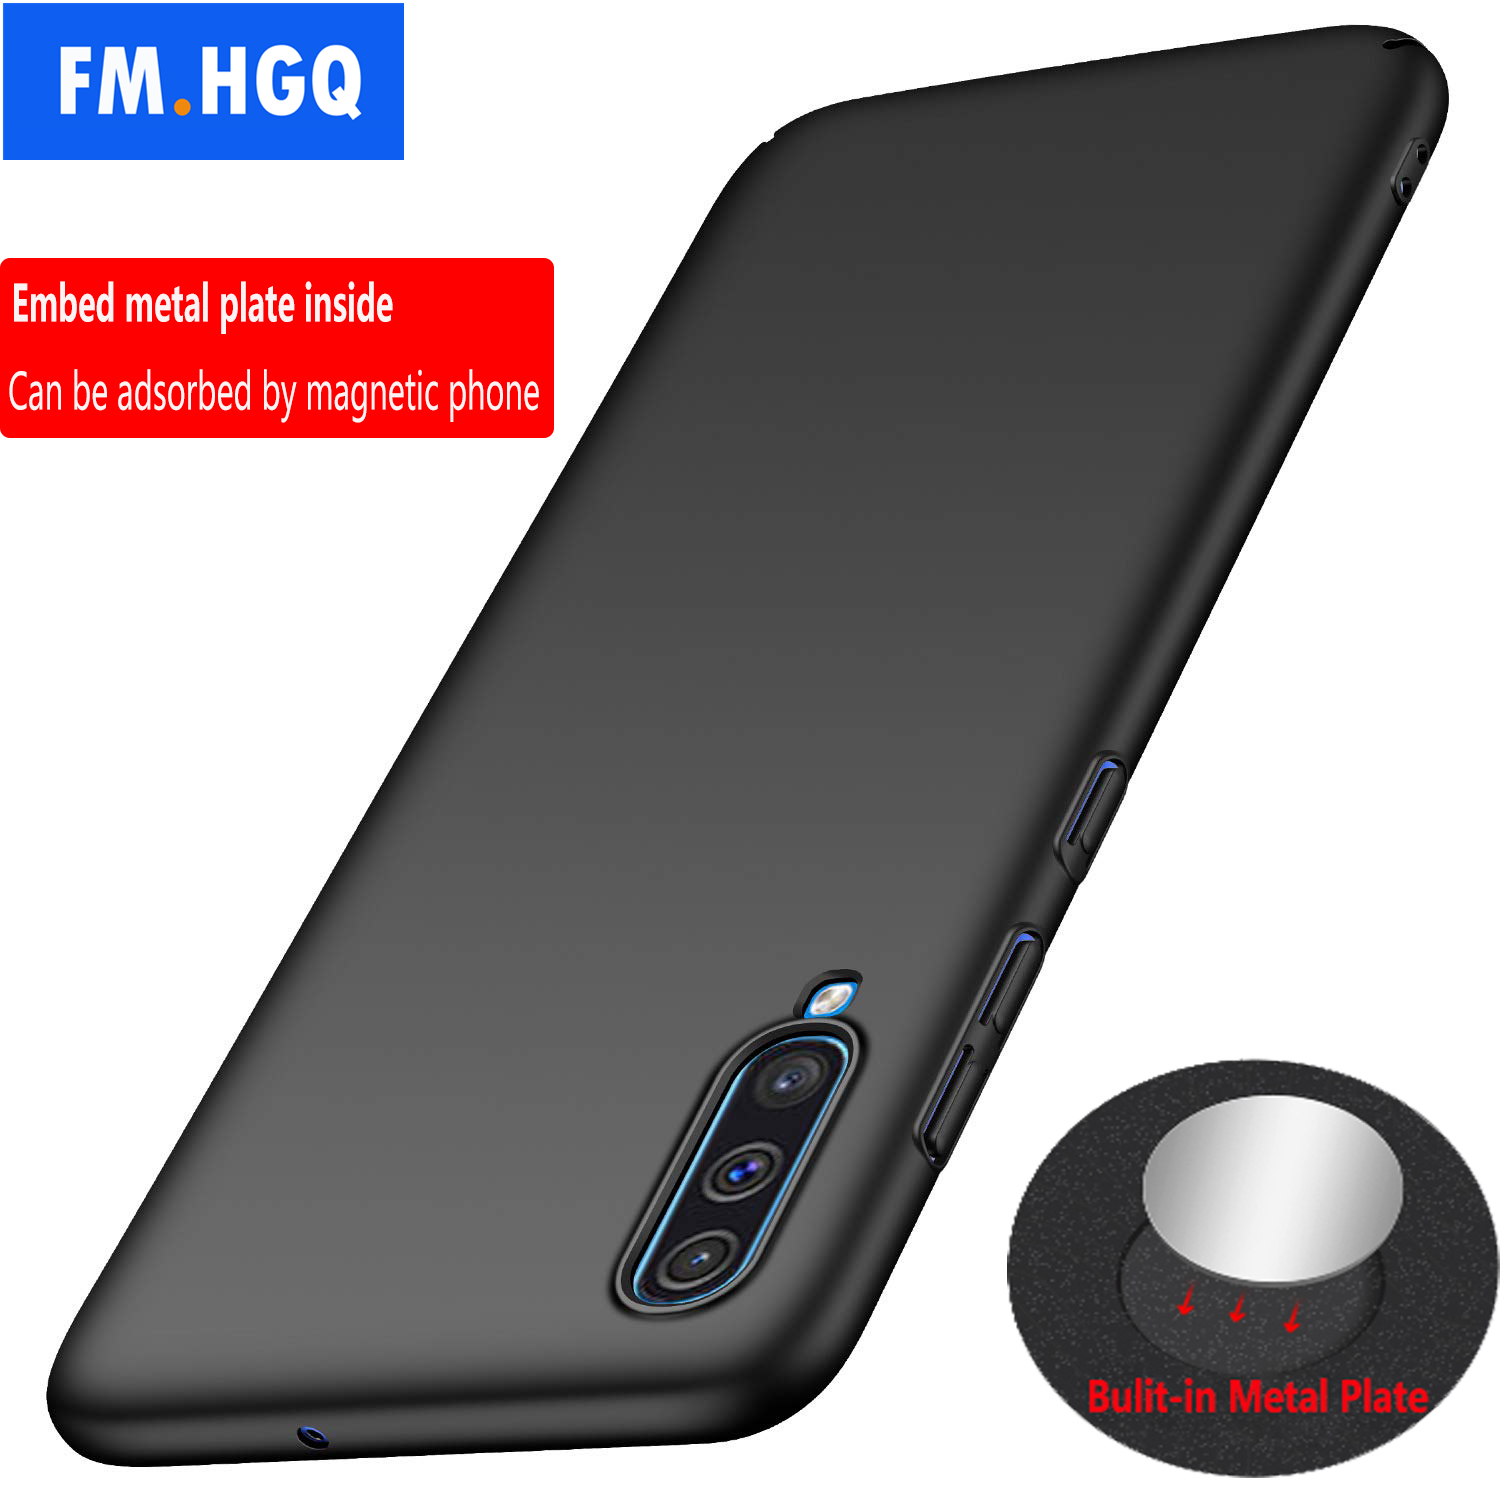 Magnetic Car Holder <font><b>Case</b></font> For <font><b>Samsung</b></font> <font><b>Galaxy</b></font> A70 A60 A50 <font><b>A40</b></font> Hard PC <font><b>Cover</b></font> for A30 20 A10 A40S Ultra-thin Breathable Scrub <font><b>Case</b></font> image